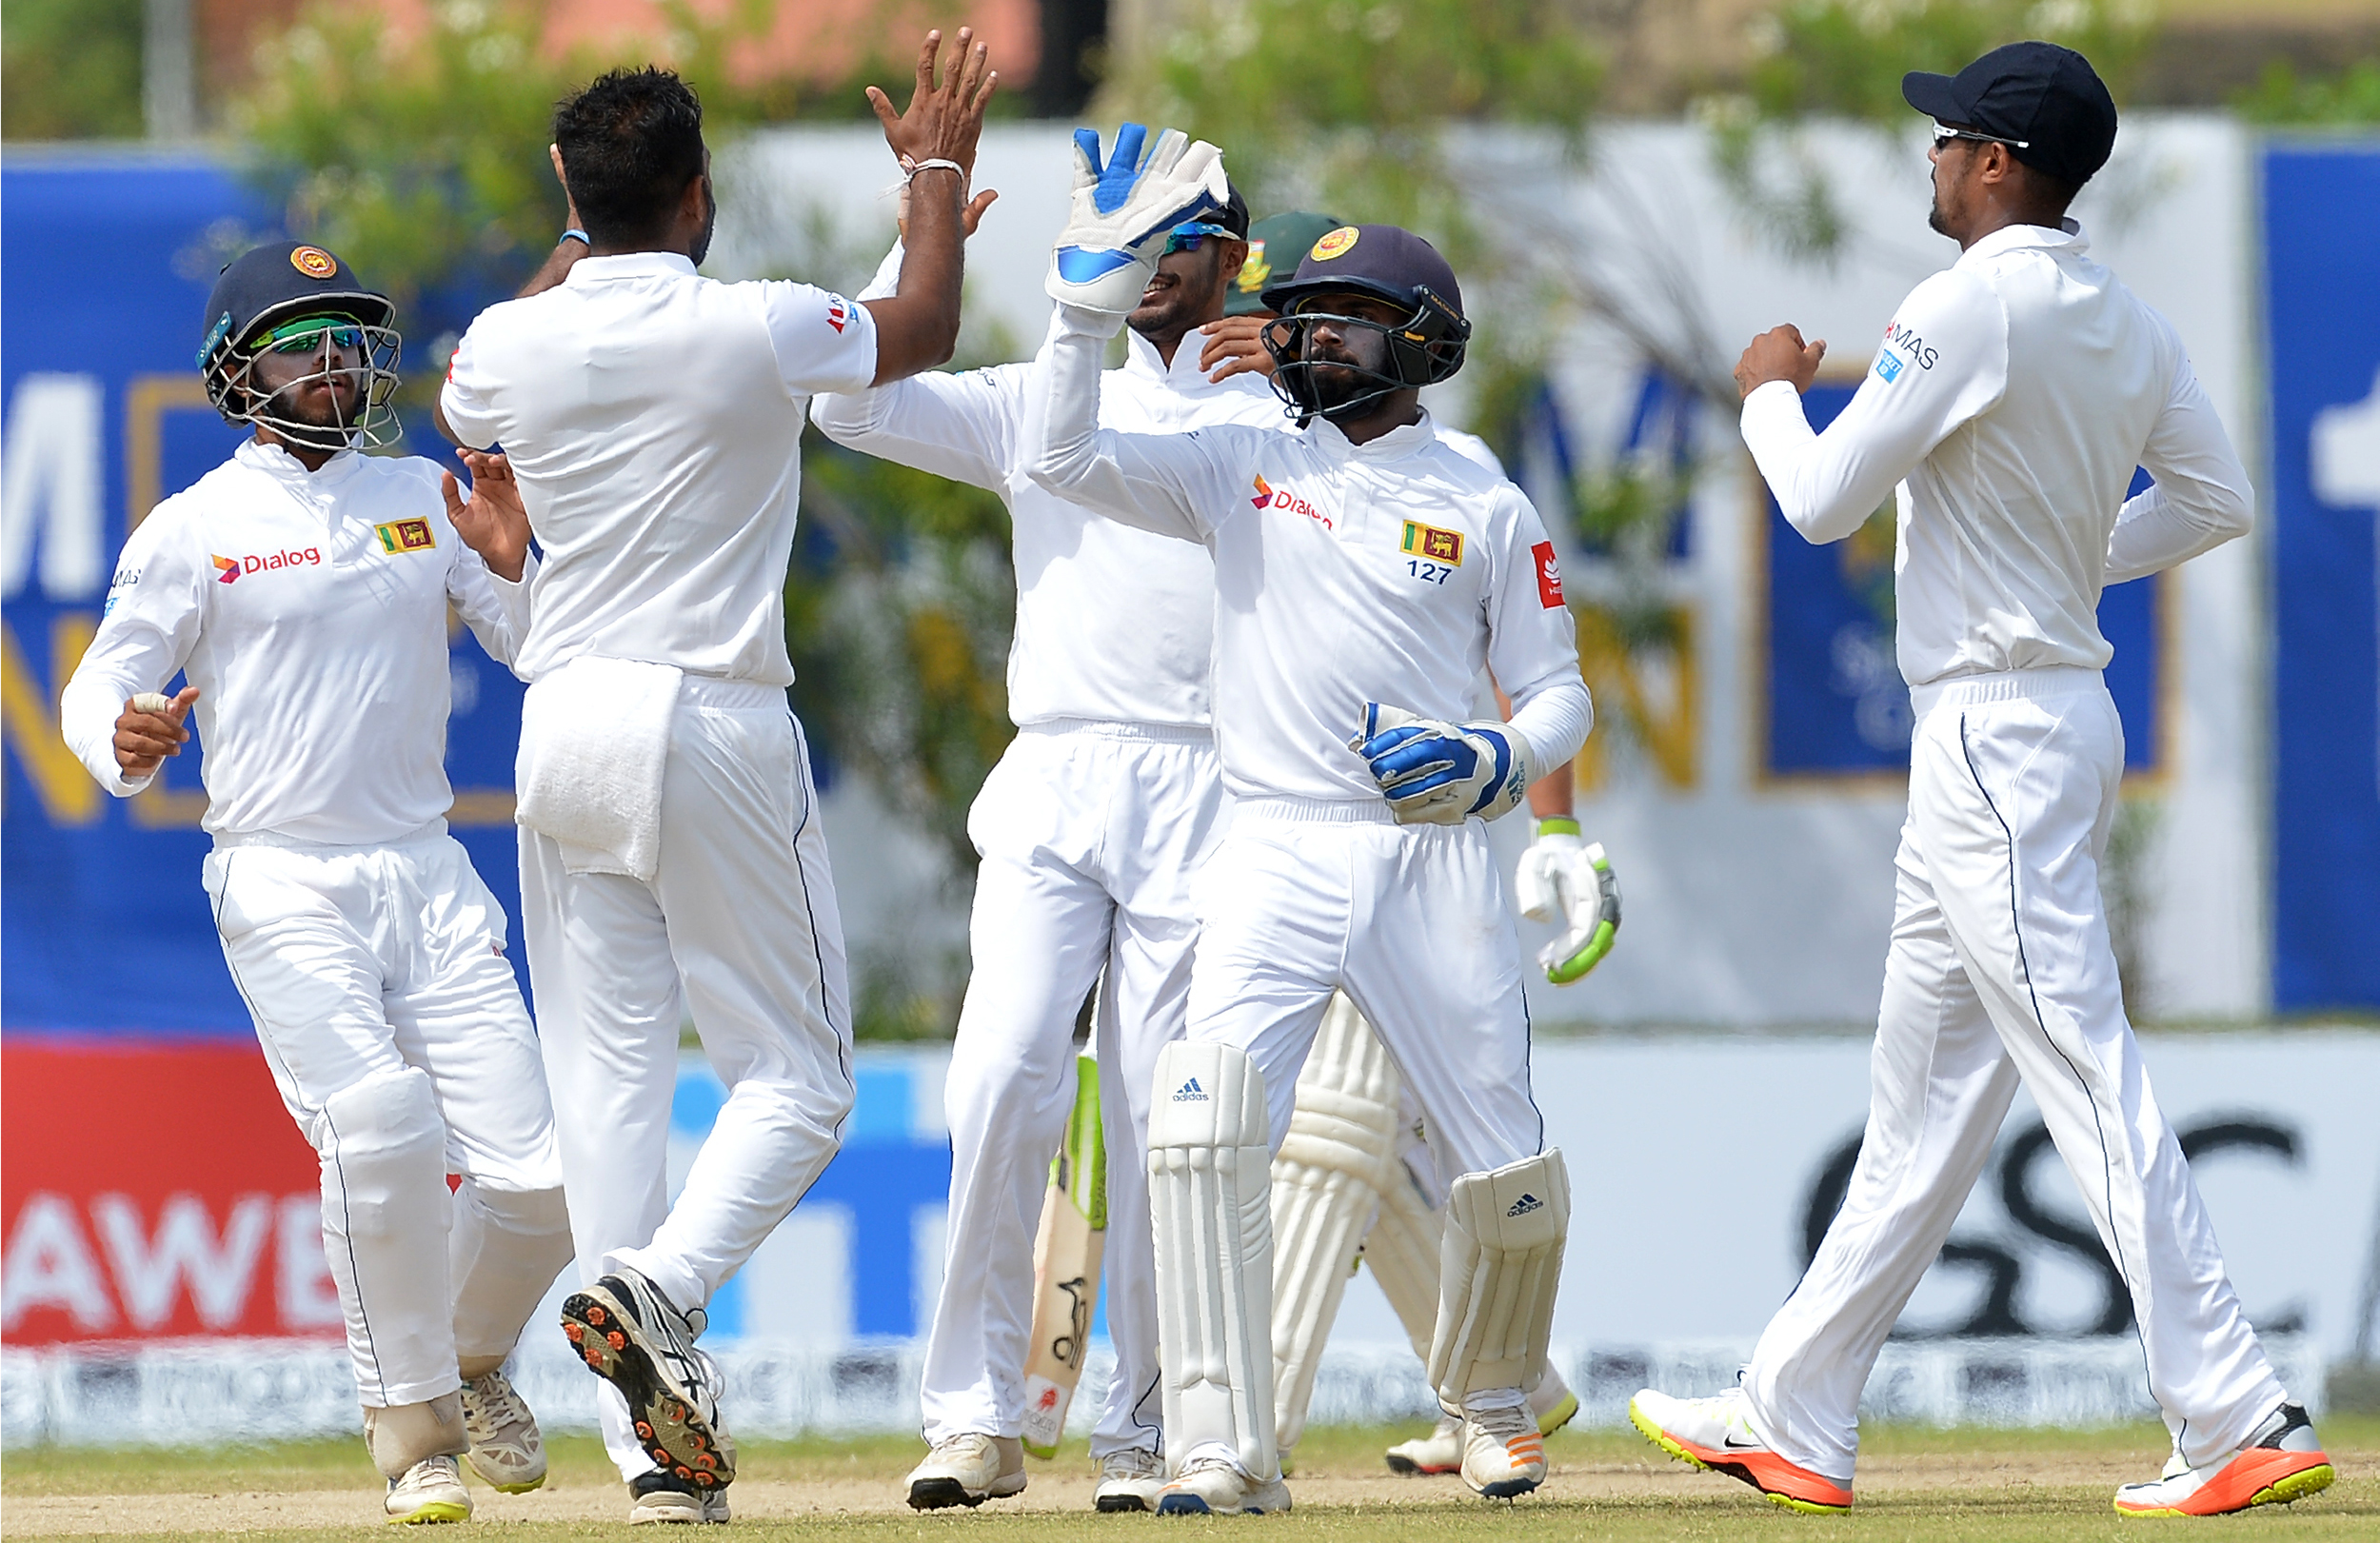 Sri Lanka spinners wreak havoc to beat S Africa inside 3 days